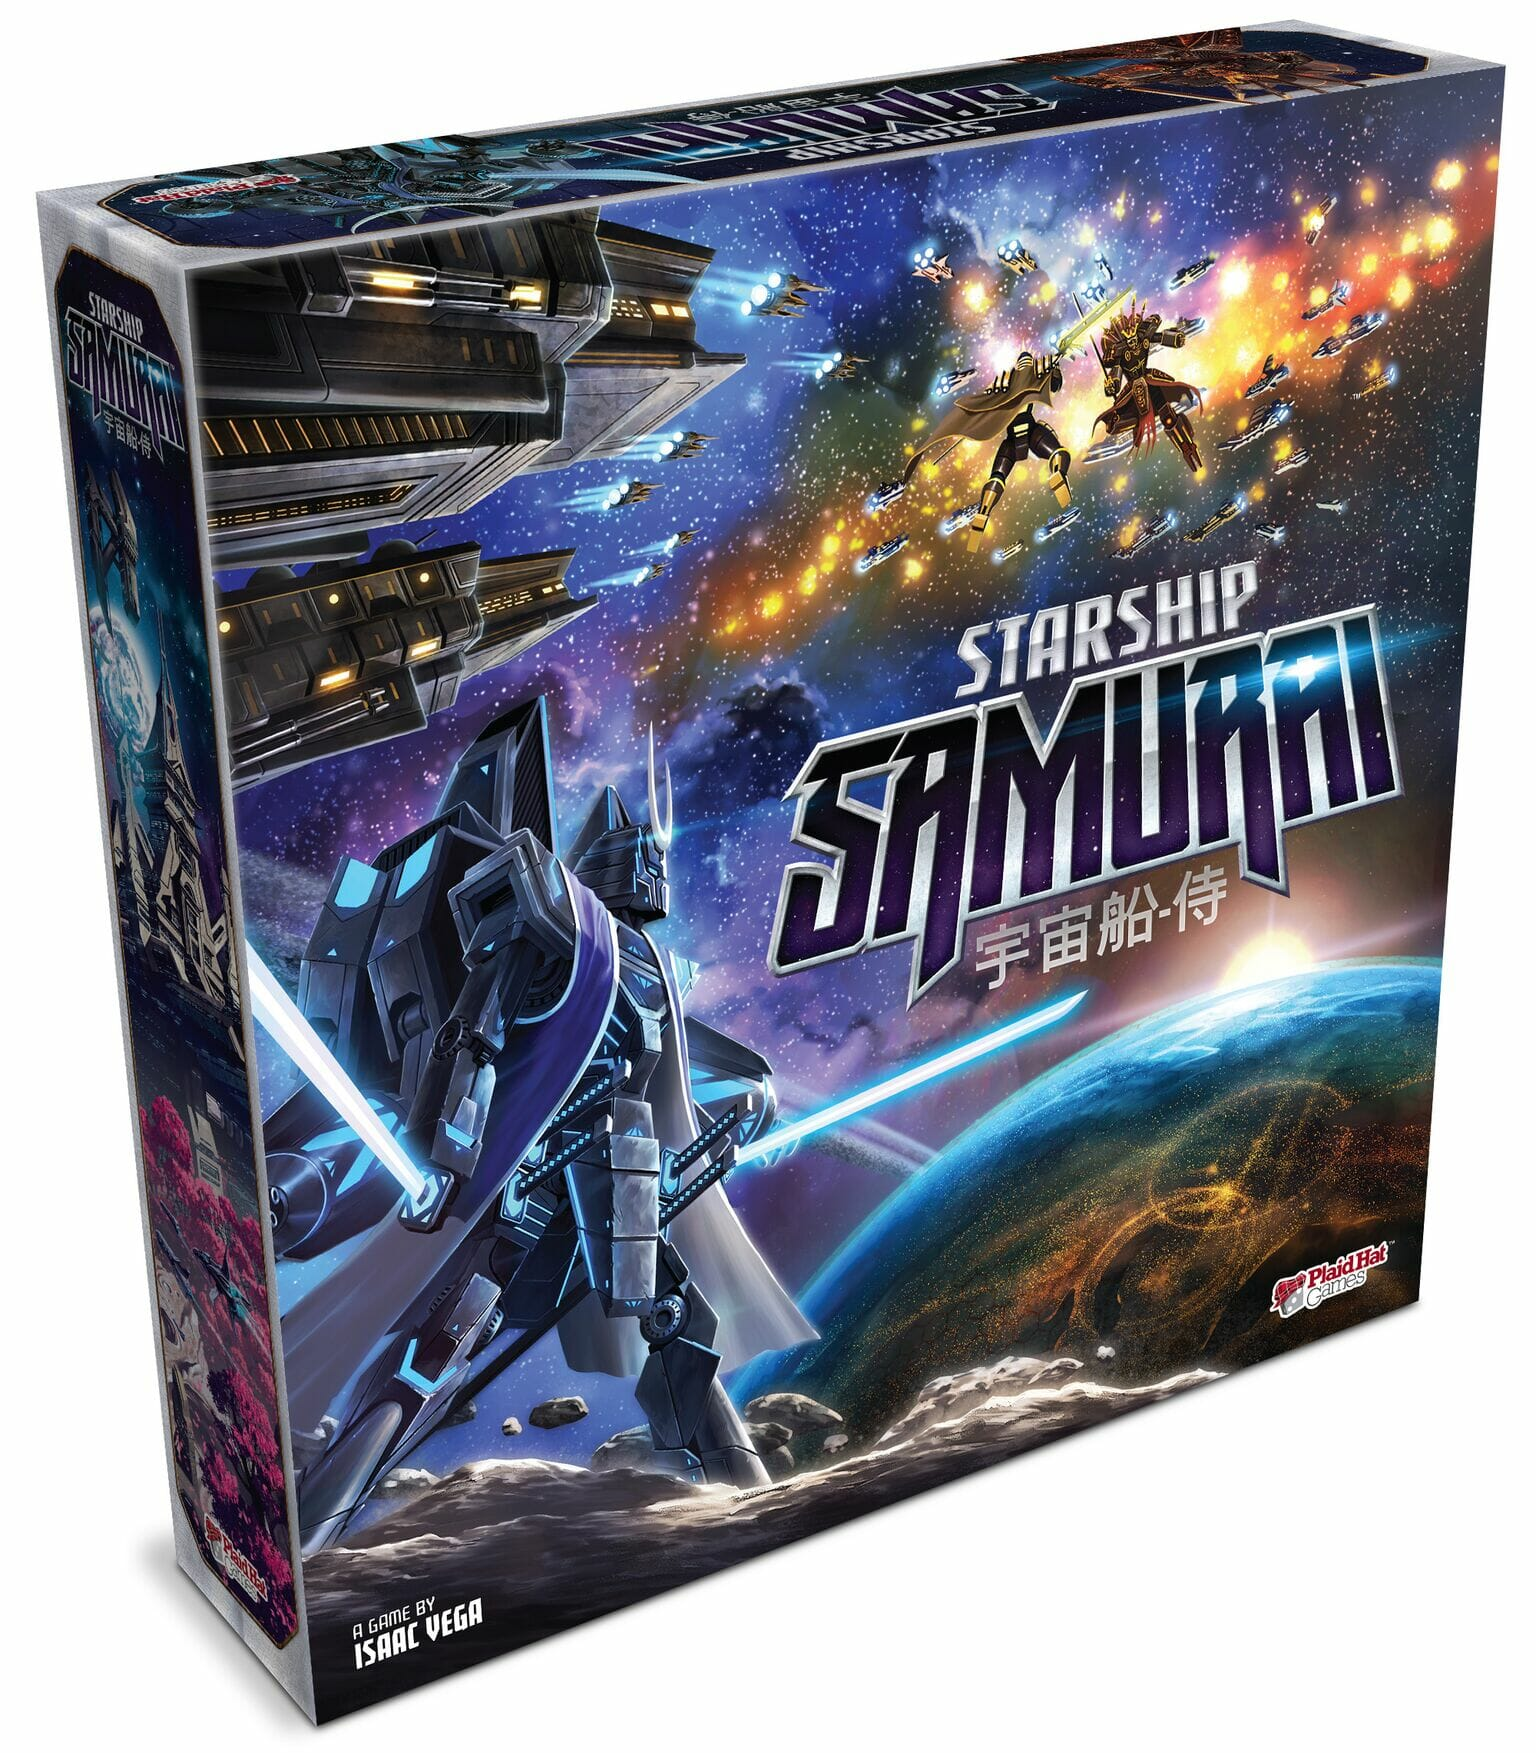 Starship Samurai box